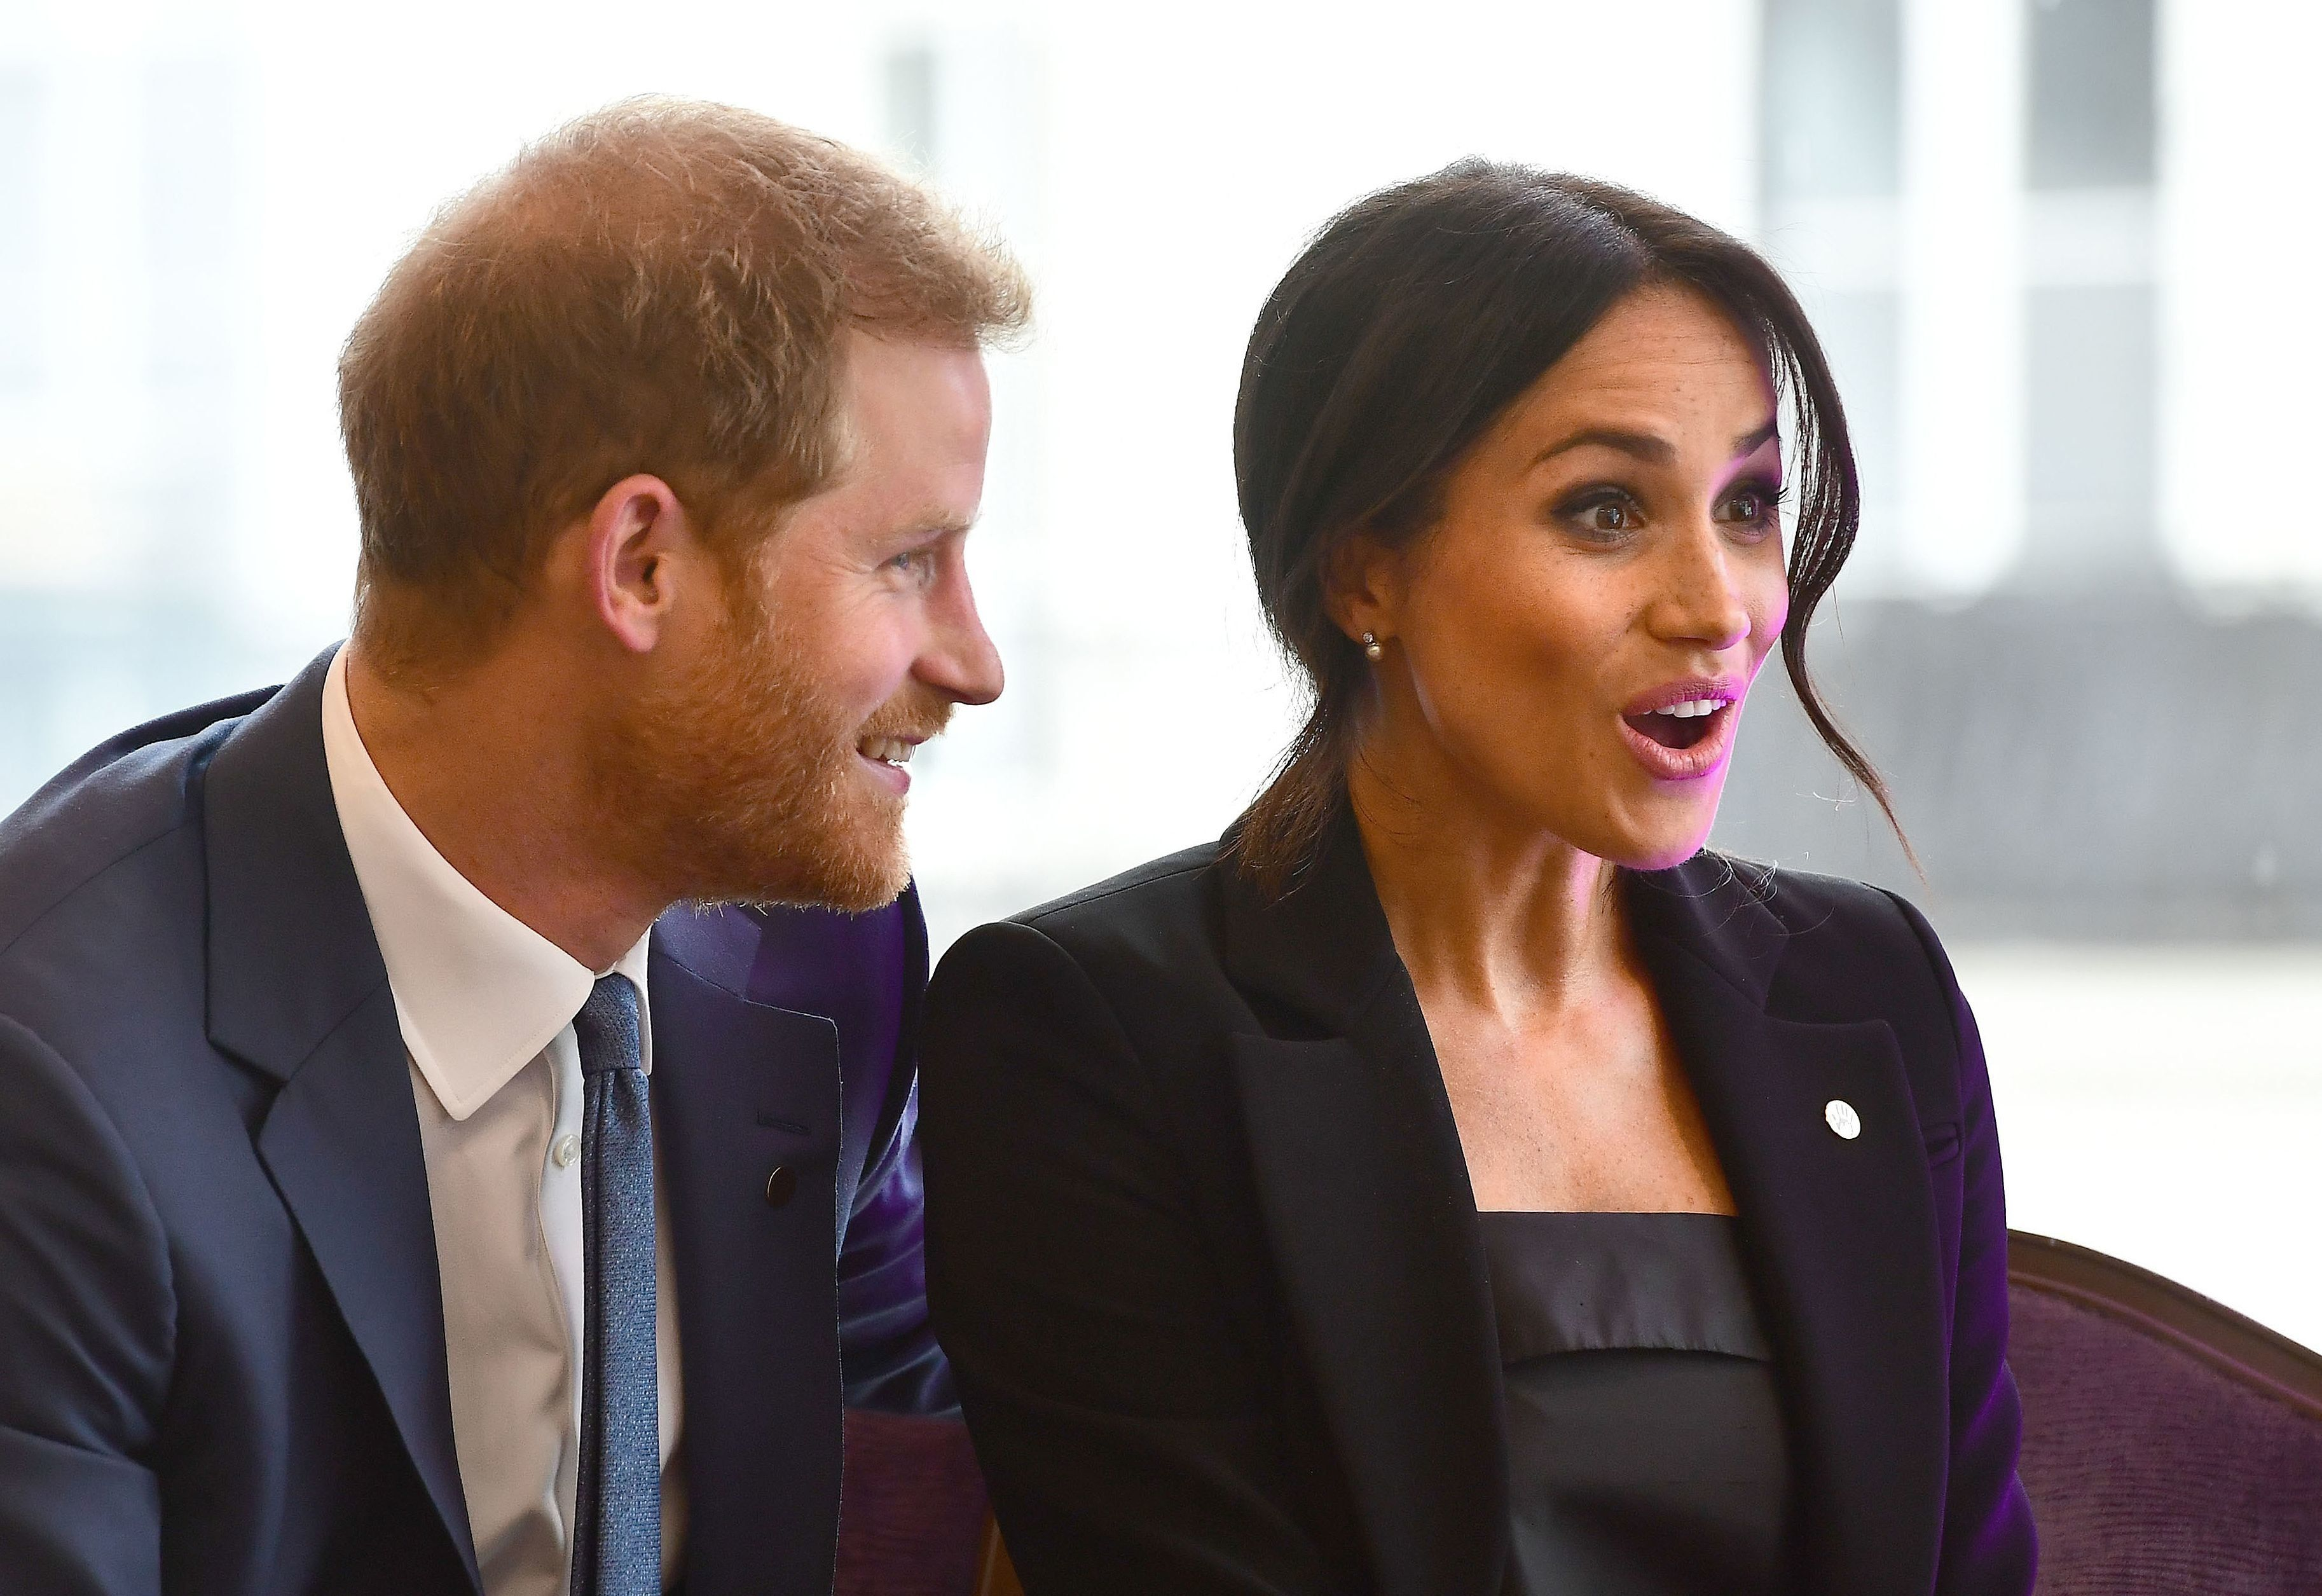 Britain's Prince Harry, Duke of Sussex, and his wife Meghan, Duchess of Sussex attend the WellChild Awards in London on September 4, 2018. - The awards recognise the courage of seriously ill children, their families and carers. (Photo by Victoria Jones / POOL / AFP)        (Photo credit should read VICTORIA JONES/AFP/Getty Images)